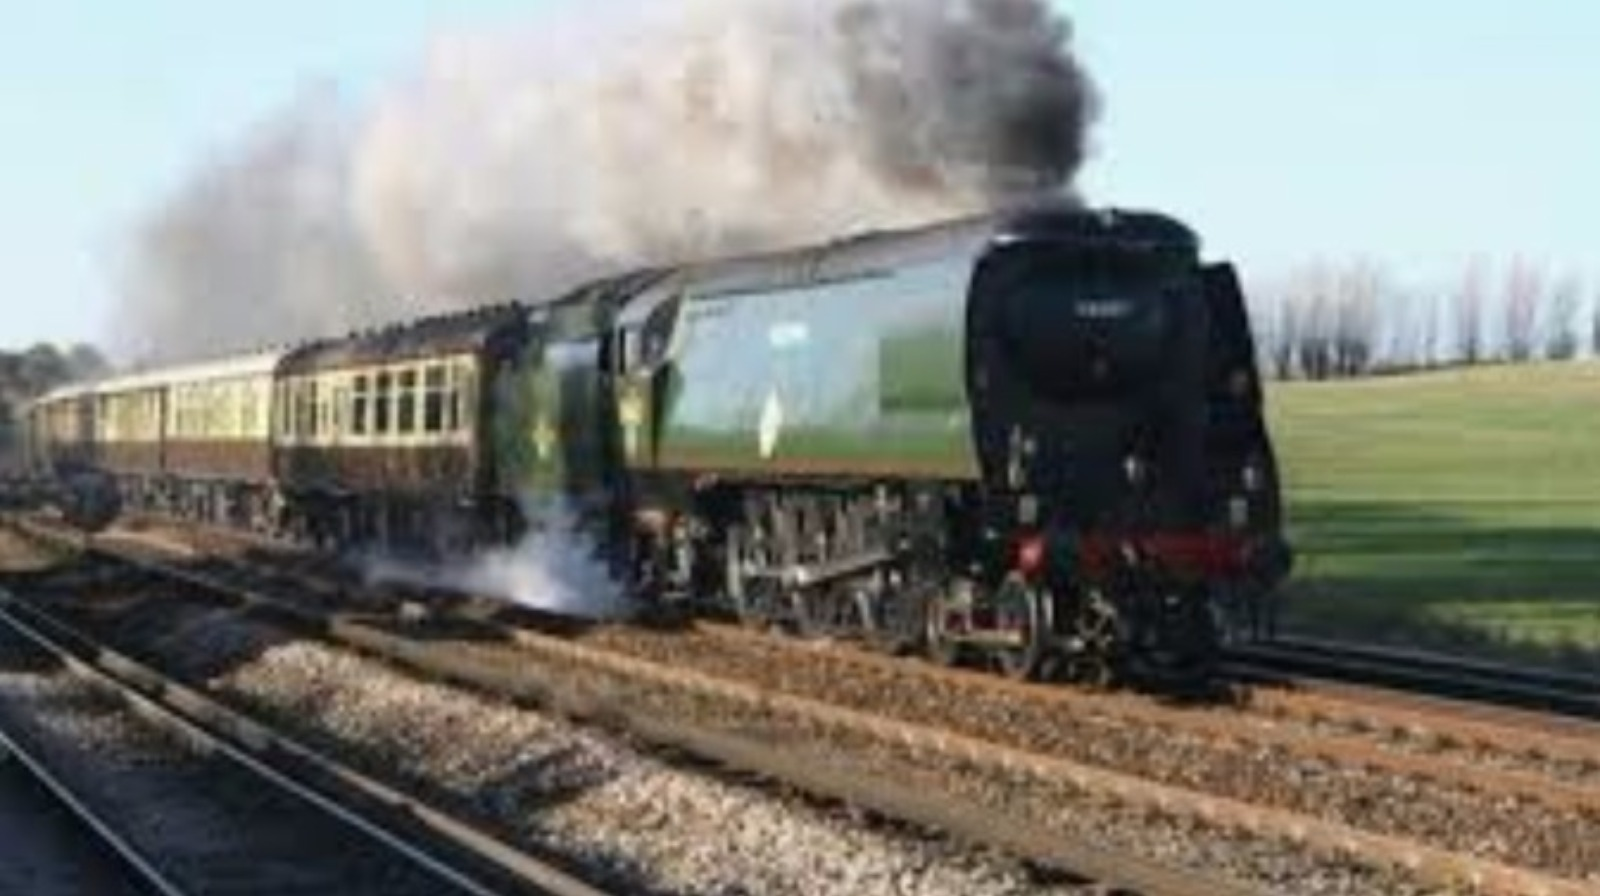 steam train firm banned from operating over safety